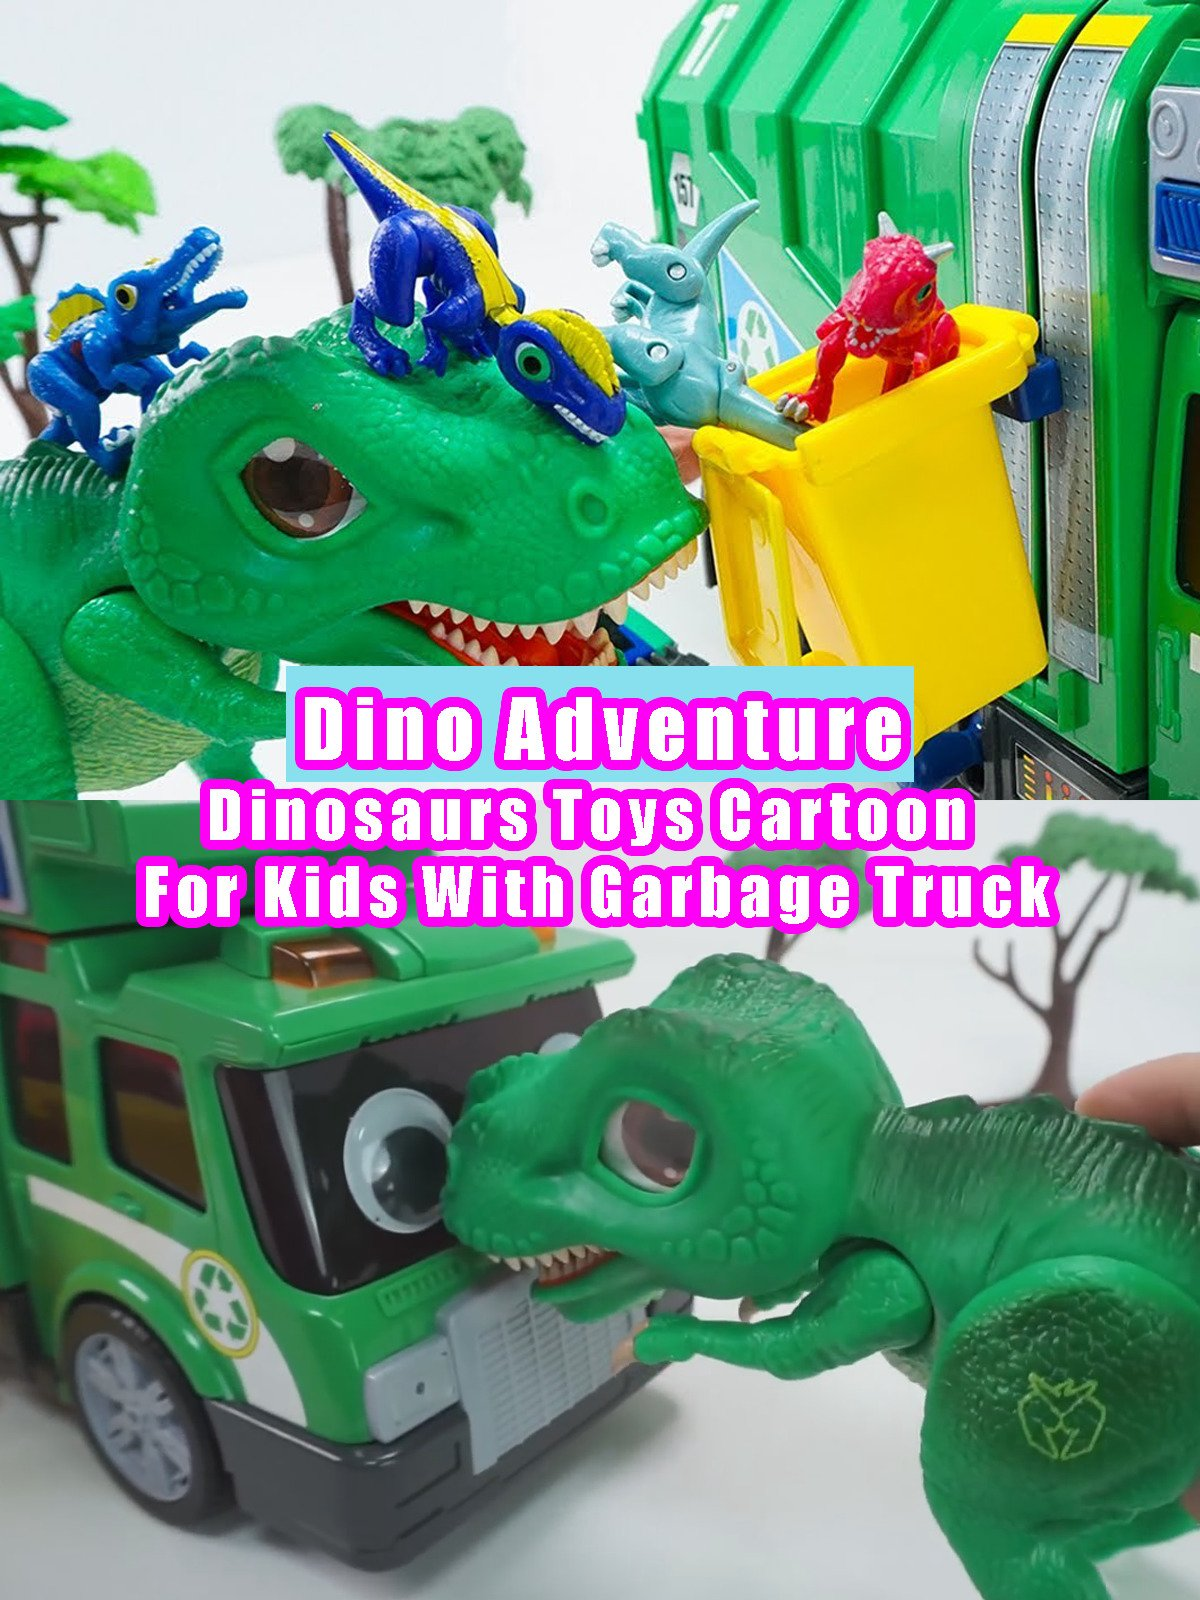 Dino Adventure - Dinosaurs Toys Cartoon For Kids With Garbage Truck